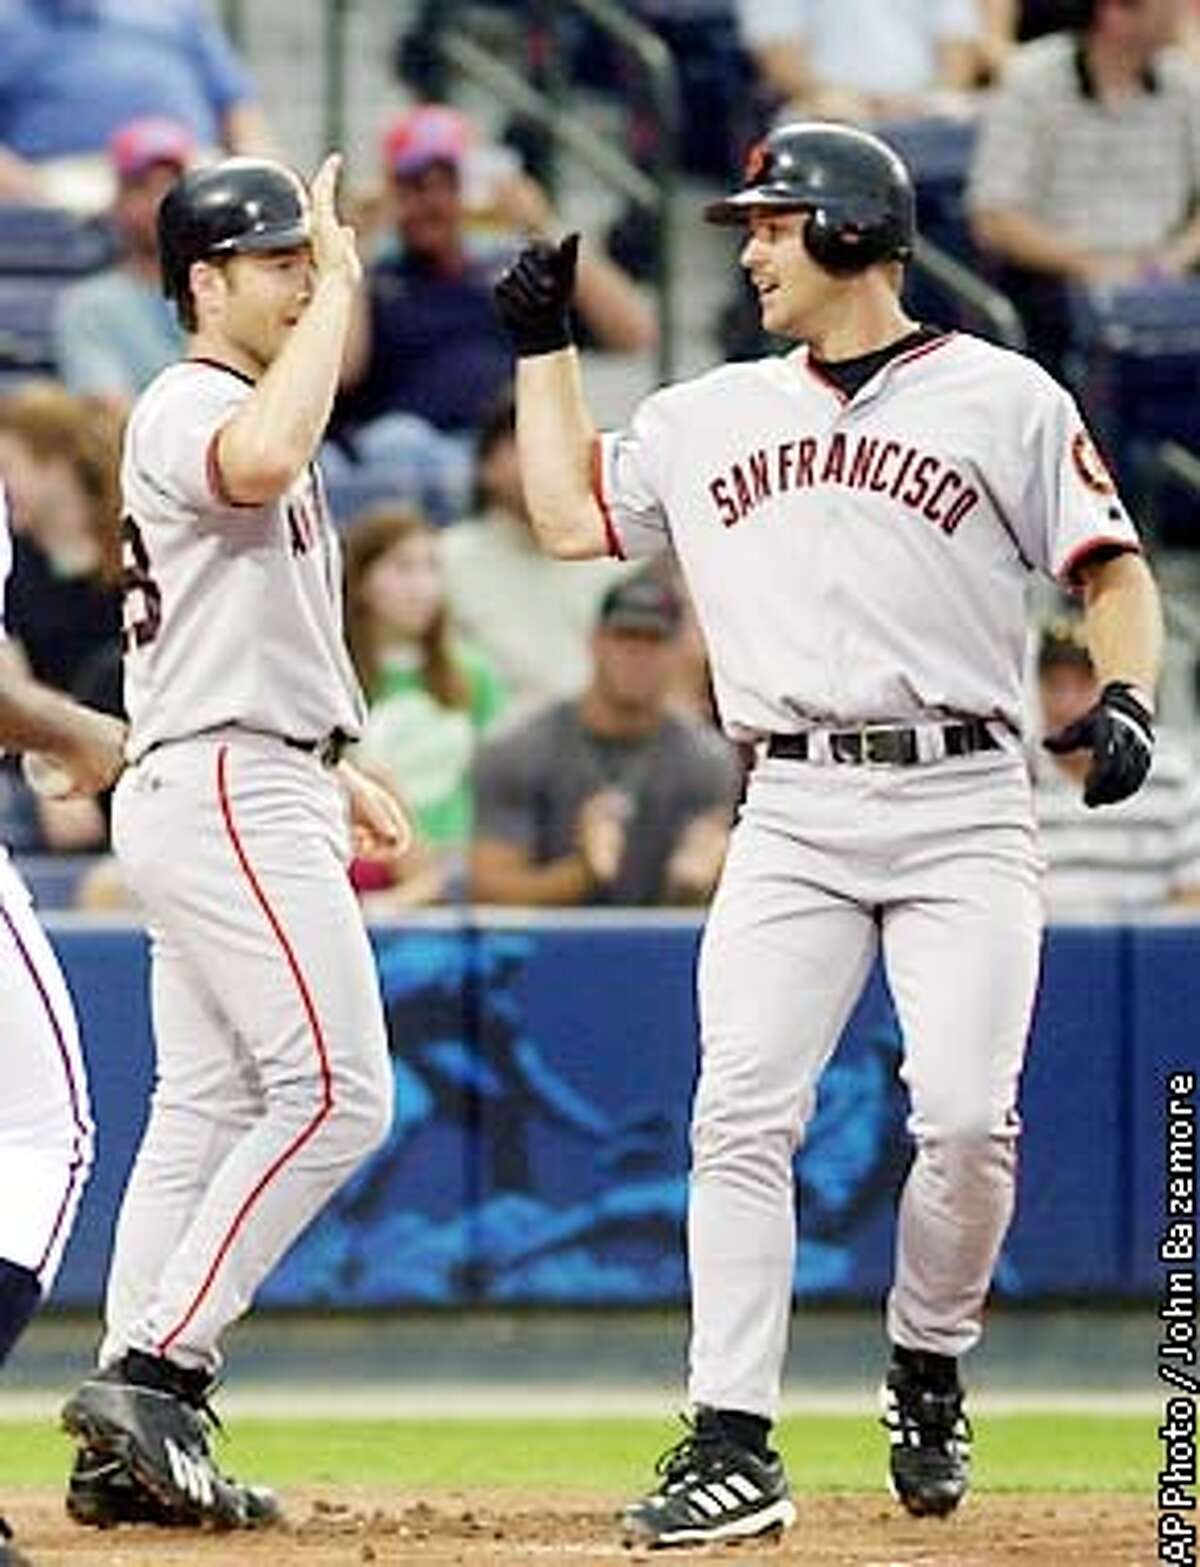 San Francisco Giants' Jeff Kent, right, is congratulated by teammate David Bell after hitting a two-run home run off Atlanta Braves starter Damian Moss in the first inning in Atlanta Thursday, Aug. 15, 2002. (AP Photo/John Bazemore)